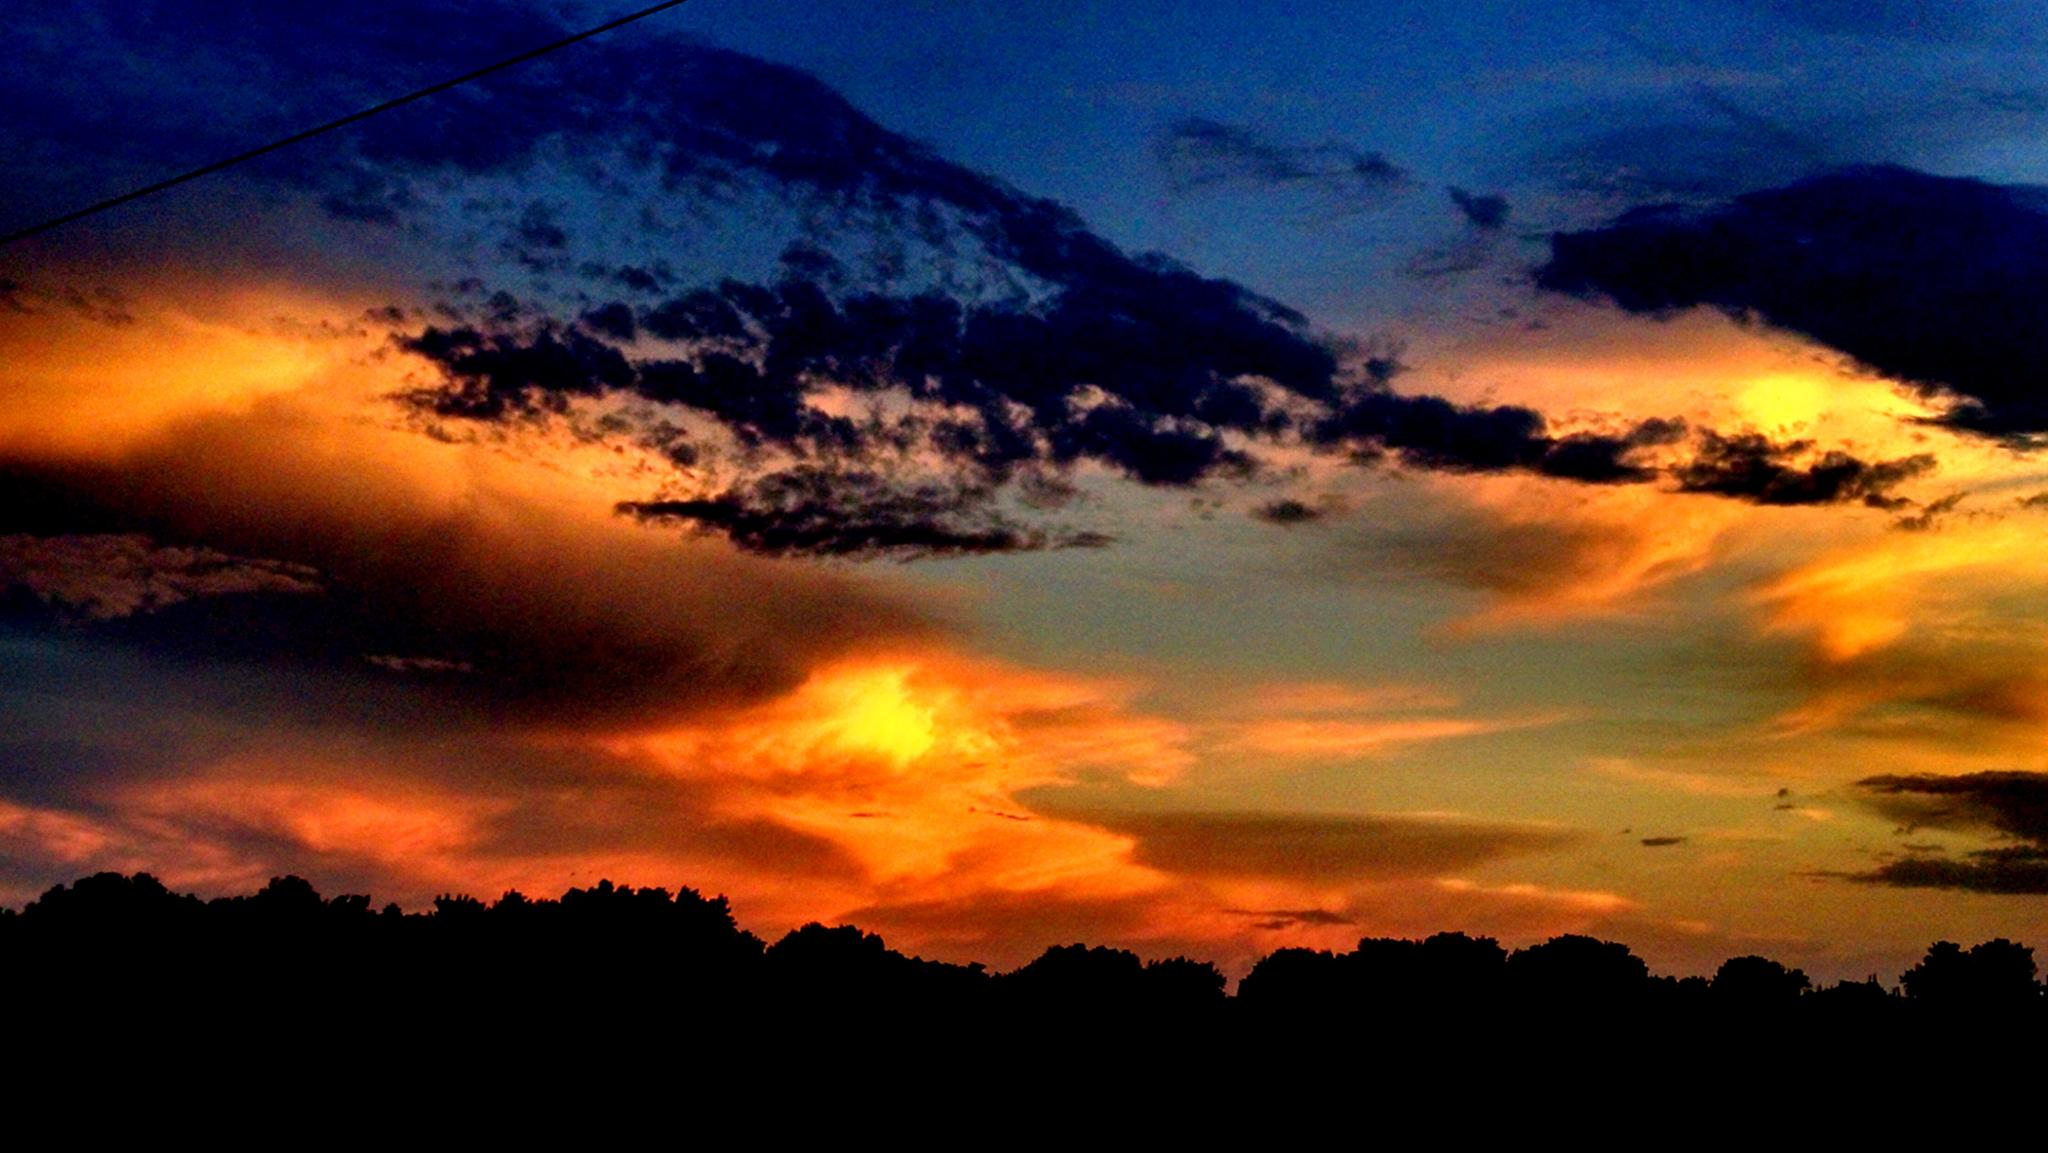 Tonight's sunset by Dusty Hast